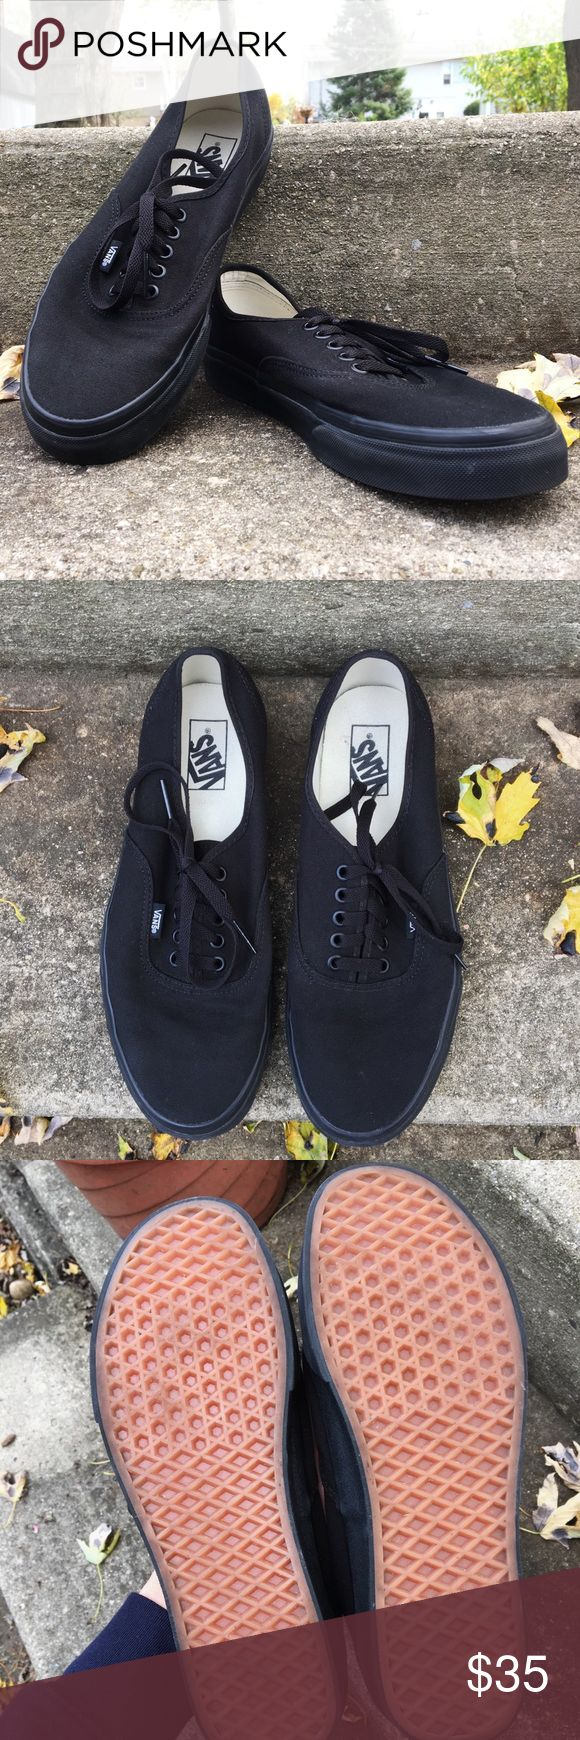 "Vans Authentic Black Shoes This pair of ""Vans Authentic Black Shoes"" is in AMAZING quality! These shoes just don't fit my style so I decided to list them so some could enjoy them! Vans Shoes Loafers & Slip-Ons"